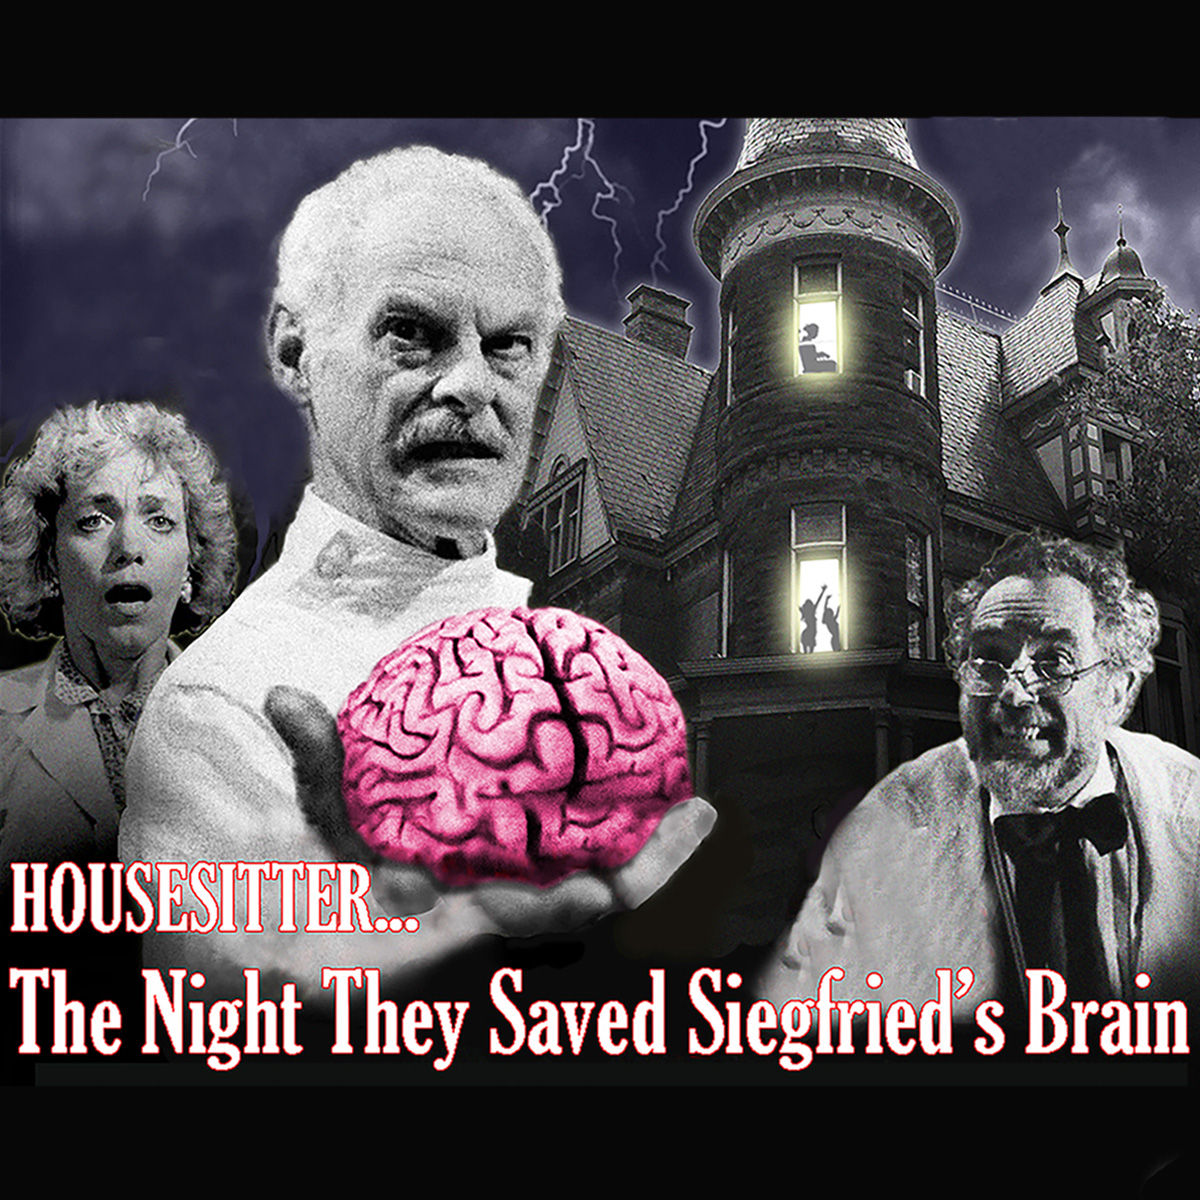 HouseSitter… The Night They Saved Siegfried's Brain at the Kalamazoo State Theatre